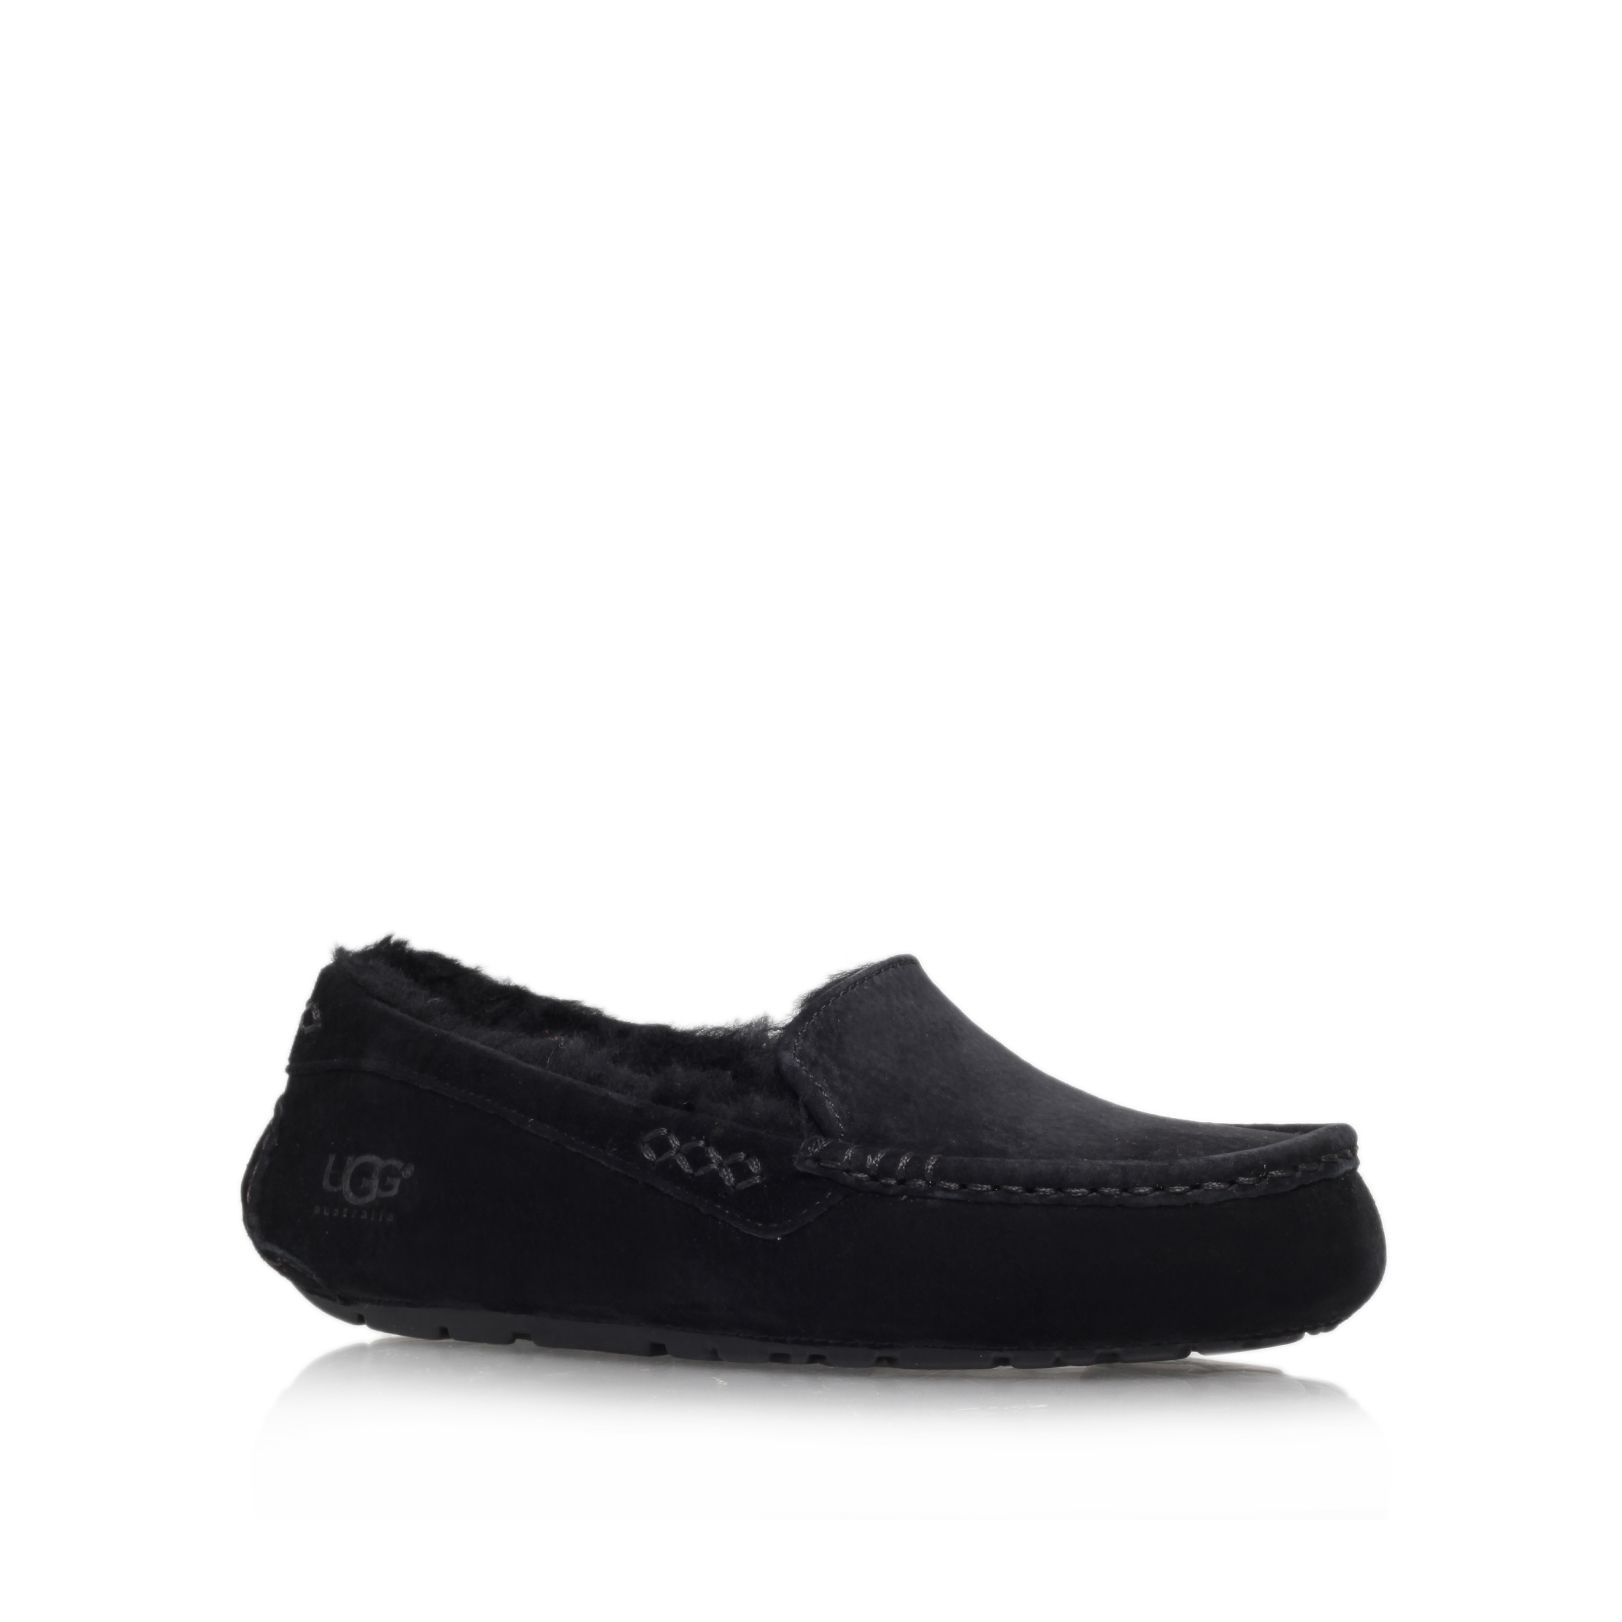 Ansley Flat Slip On Loafer